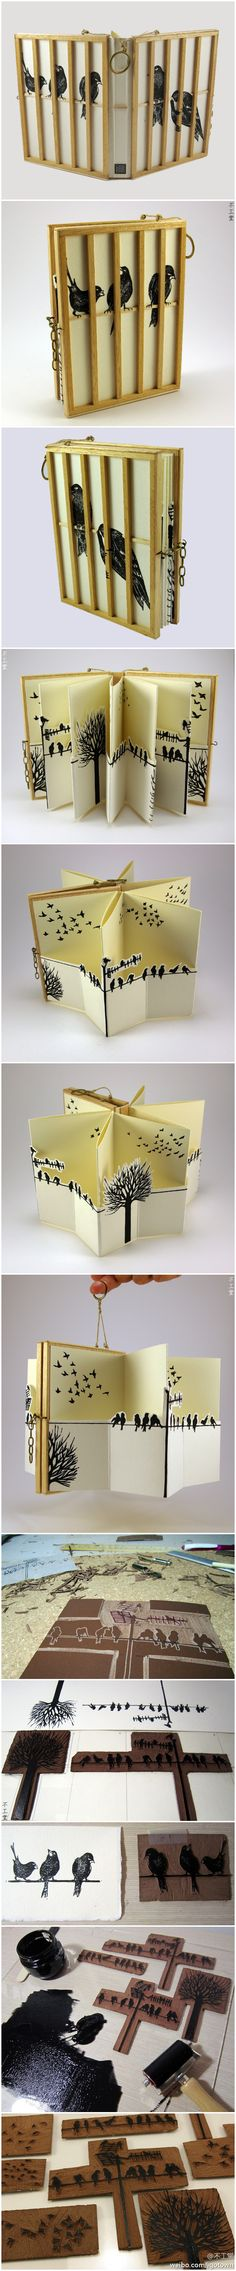 "Simply beautiful - Artist book ""Among Humans"" by Cassandra Fernandez - Lino-cut prints on paper and wood applications http://www.cassa-studio.com/work/ #book_arts"